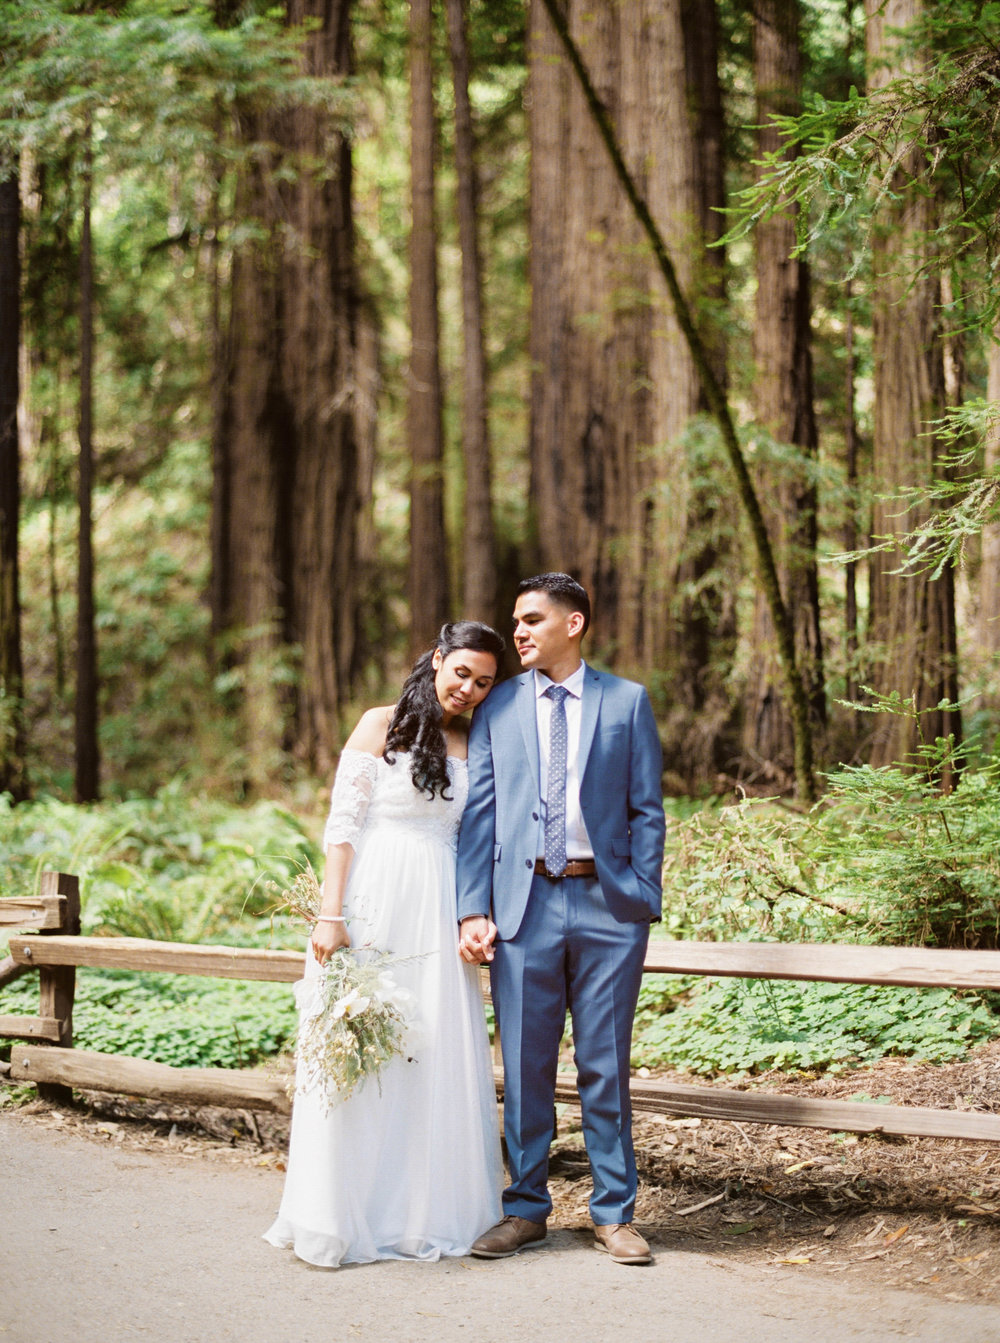 009_Krysten-Crebin-Muir-Woods-Elopement-Wedding-Photographer.jpg